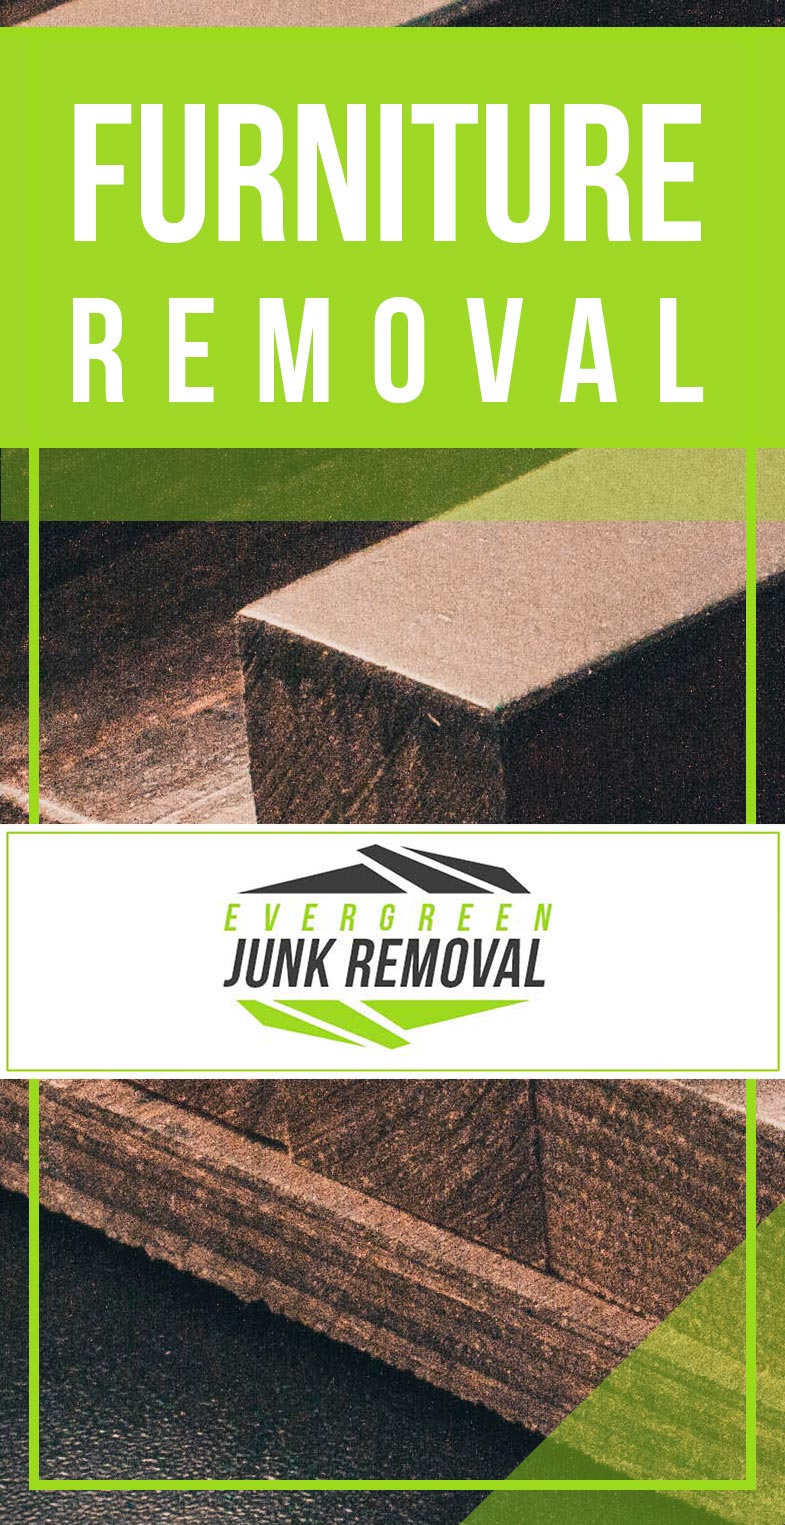 West Omaha Furniture Removal